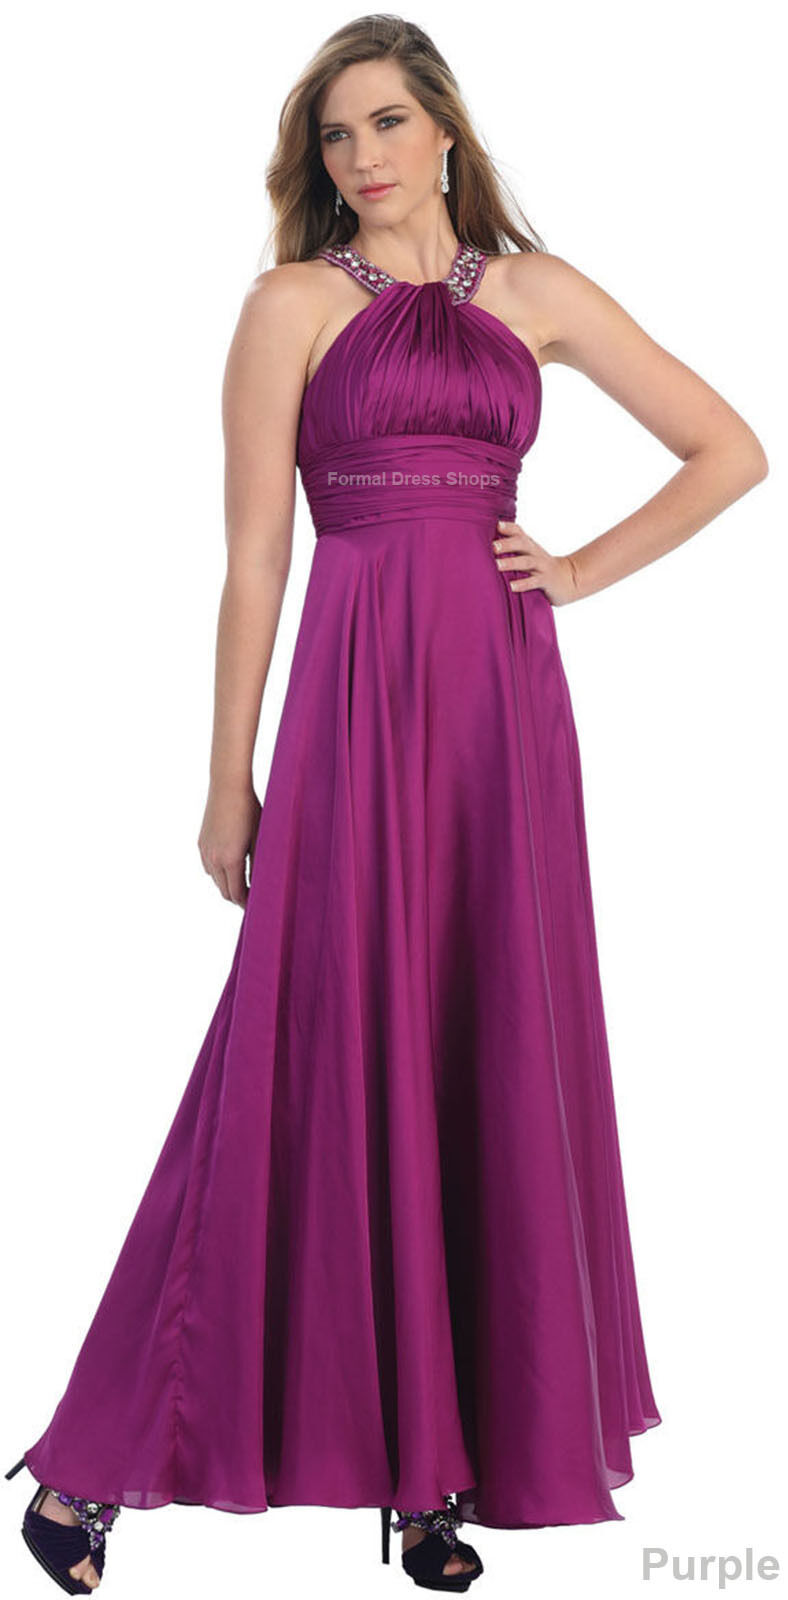 Plus Size Winter Ball Dresses - Homecoming Party Dresses